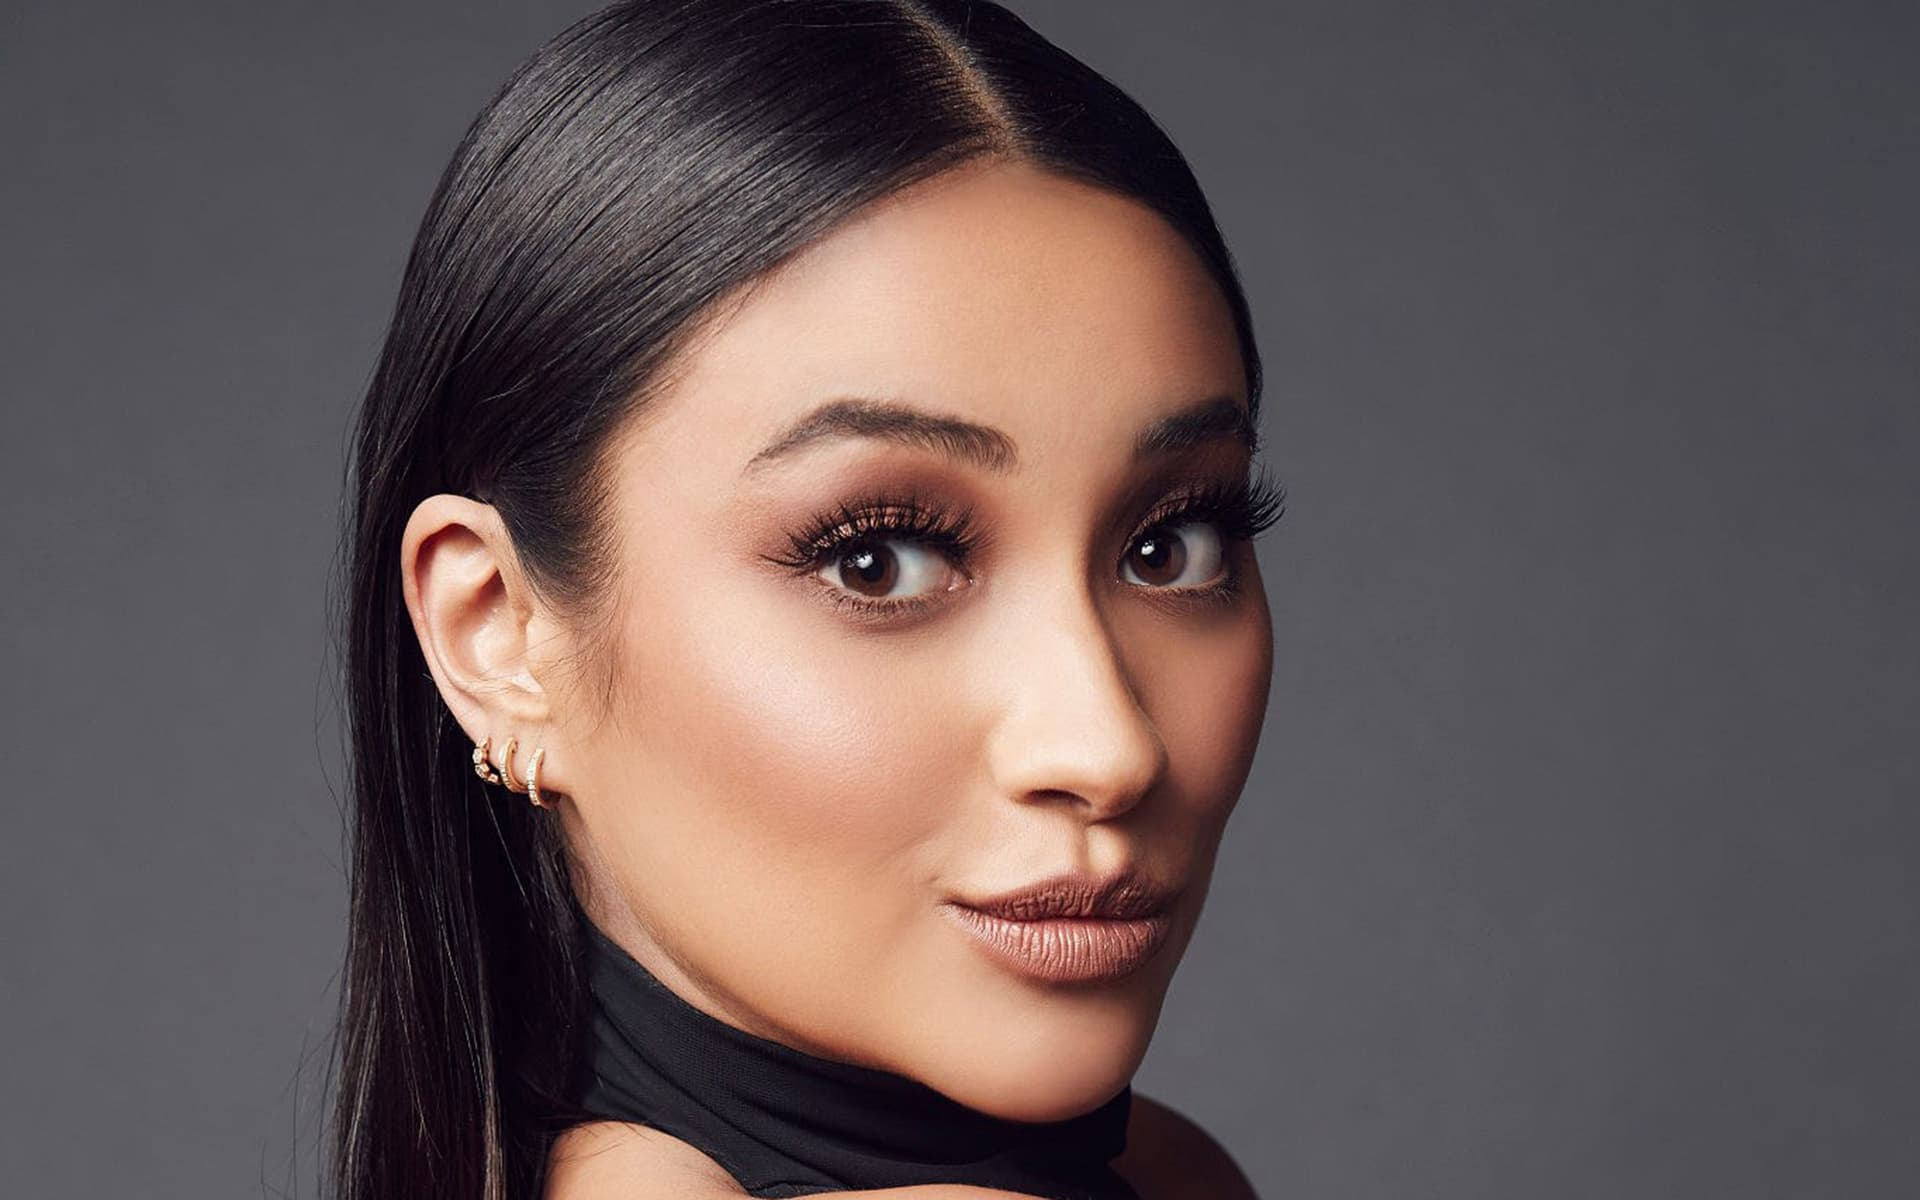 earrings Shay Mitchell computer wallpaper